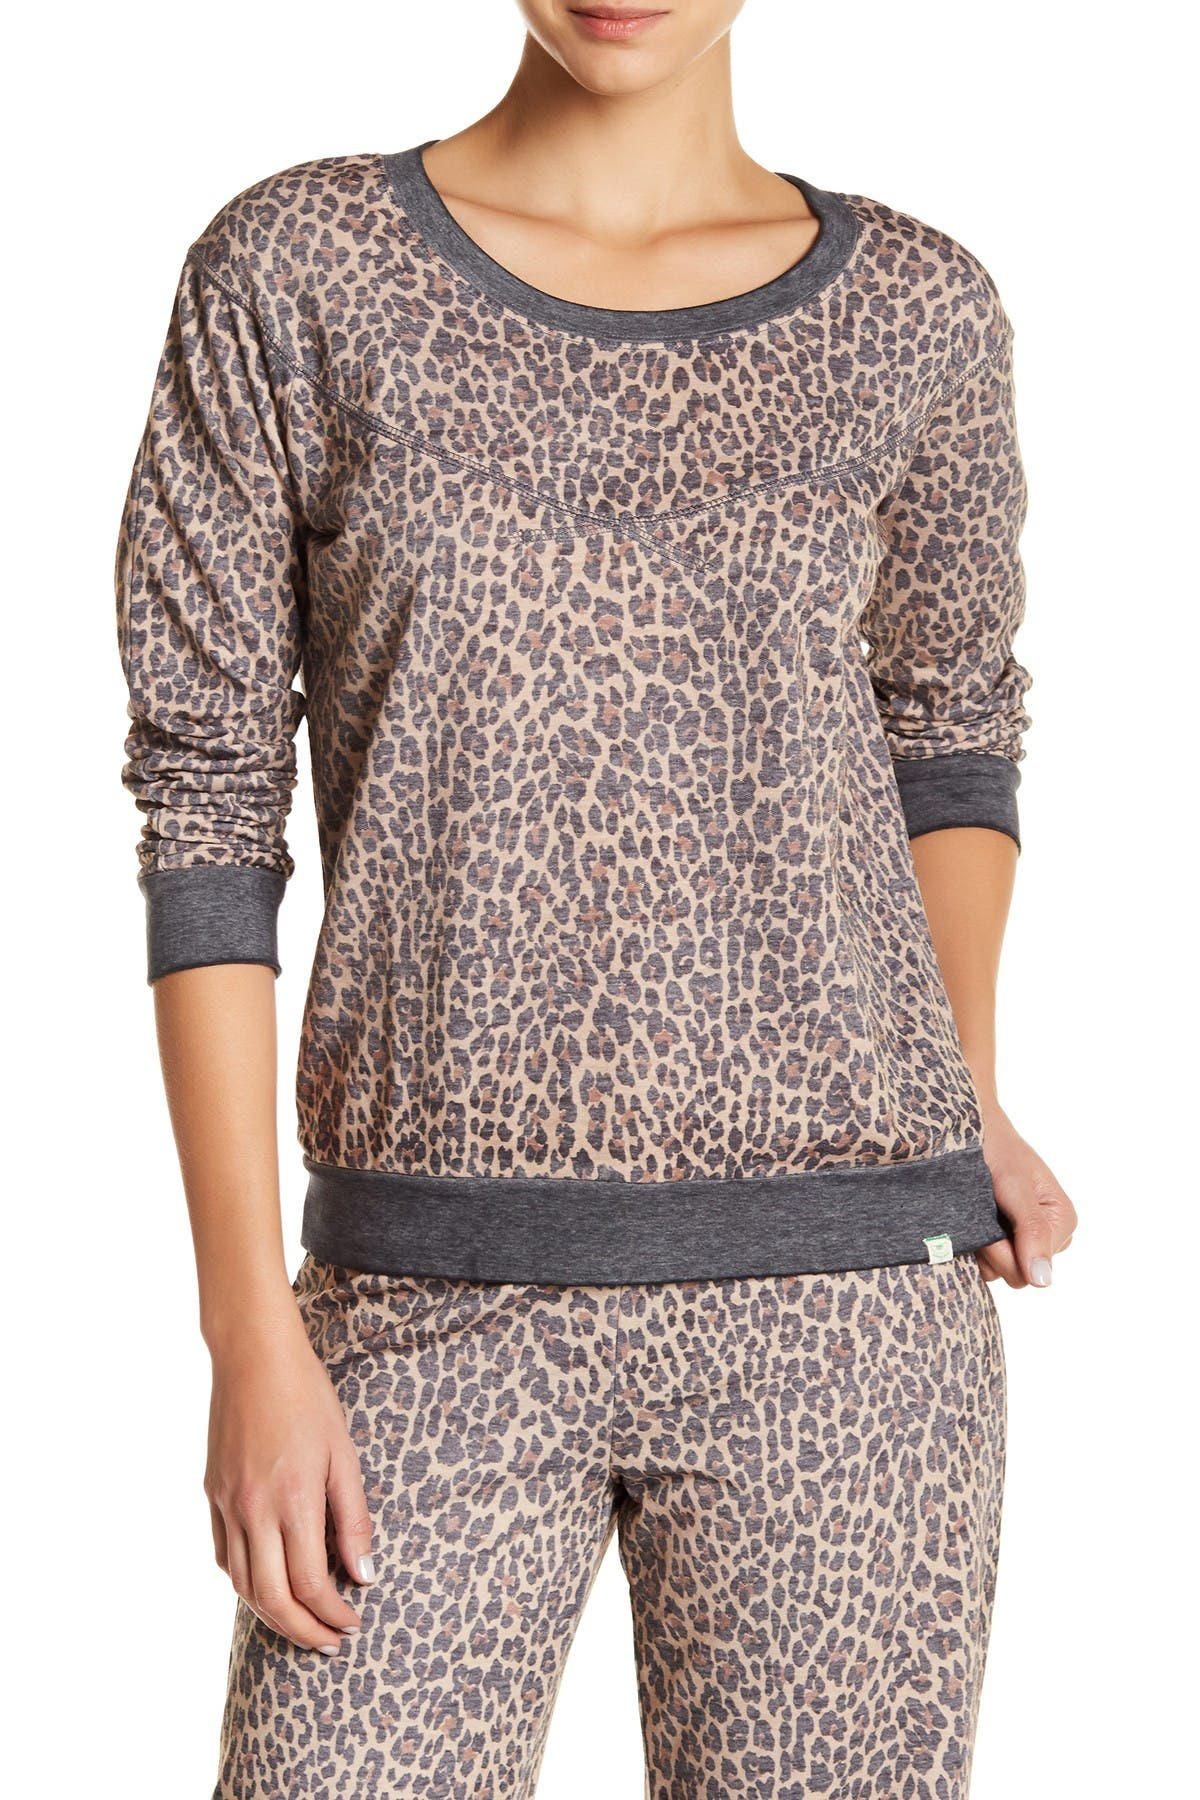 Image of Honeydew Intimates Undrest Pullover Sweatshirt